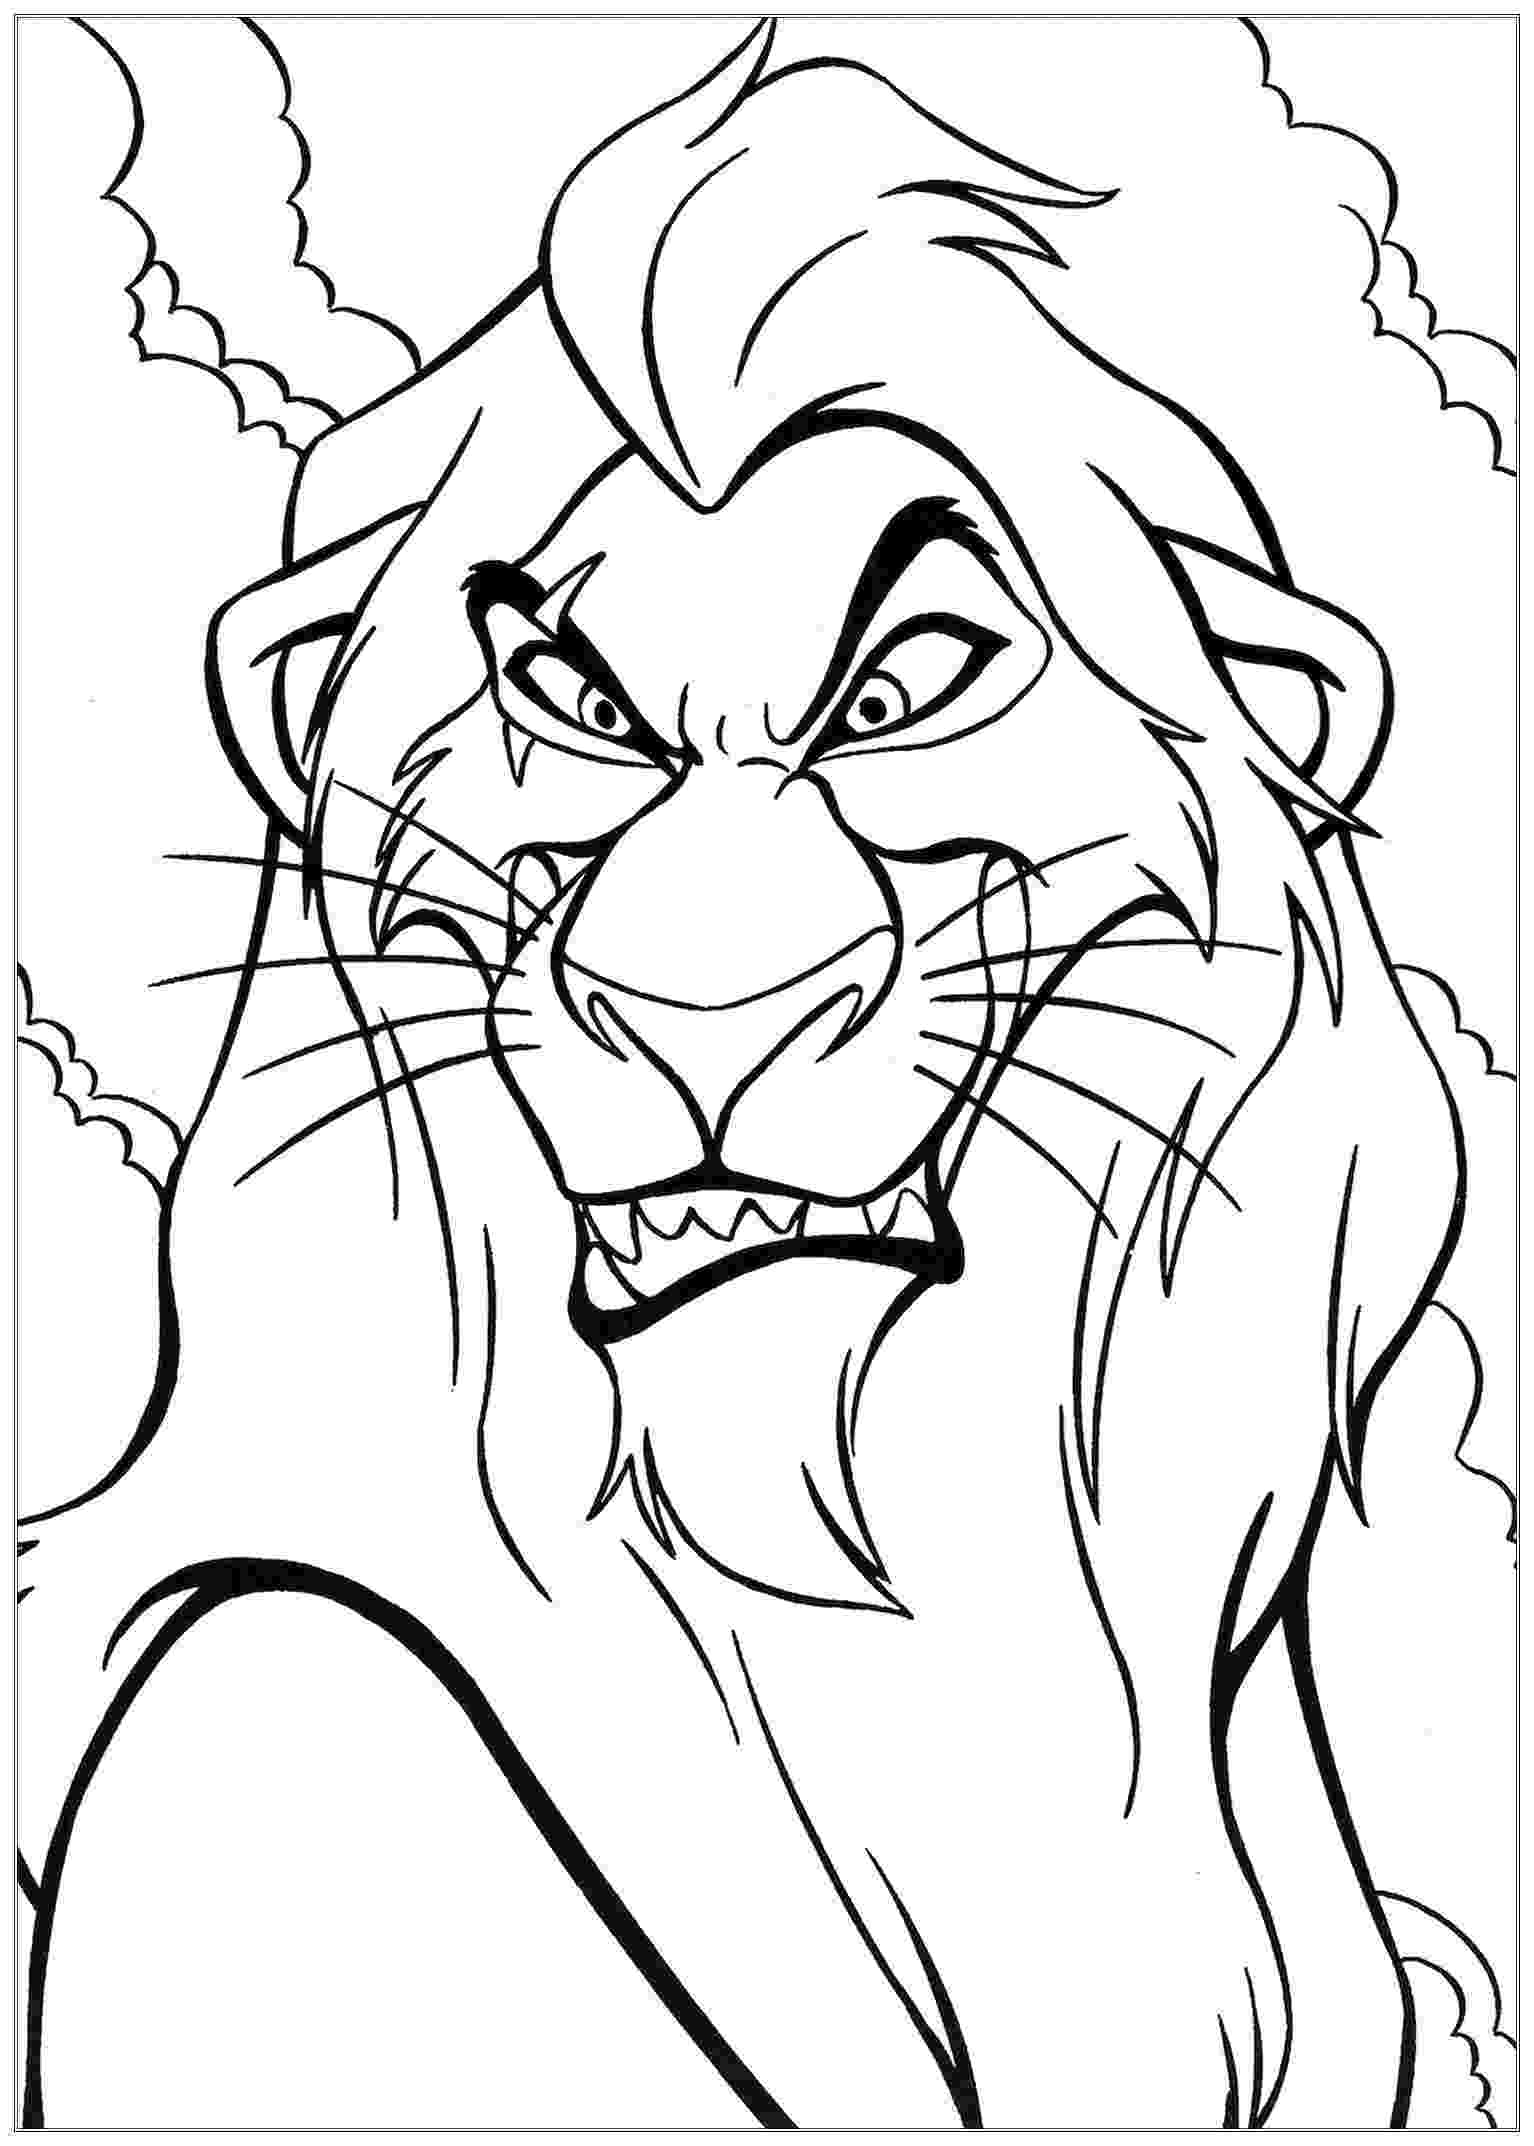 lion king coloring book pages the lion king coloring pages 2 disneyclipscom lion king coloring pages book